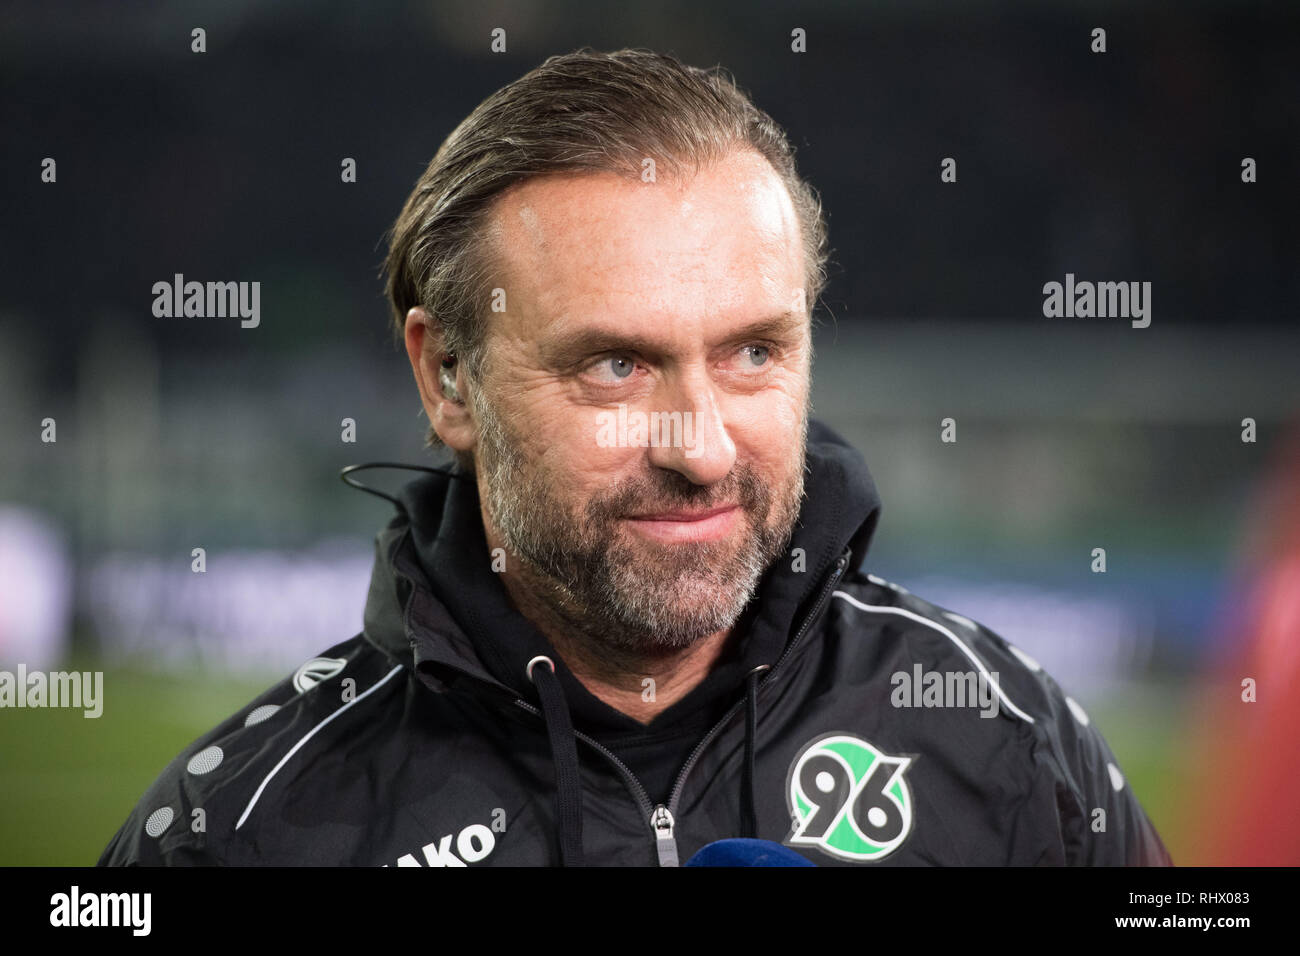 Hanover, Deutschland. 01st Feb, 2019. Thomas DOLL (coach, H) in an interview, TV, TV, half-length, football 1. Bundesliga, 20th matchday, Hanover 96 (H) - RB Leipzig (L), on 01.02.2019 in Hannover/Germany. ¬ | usage worldwide Credit: dpa/Alamy Live News - Stock Image